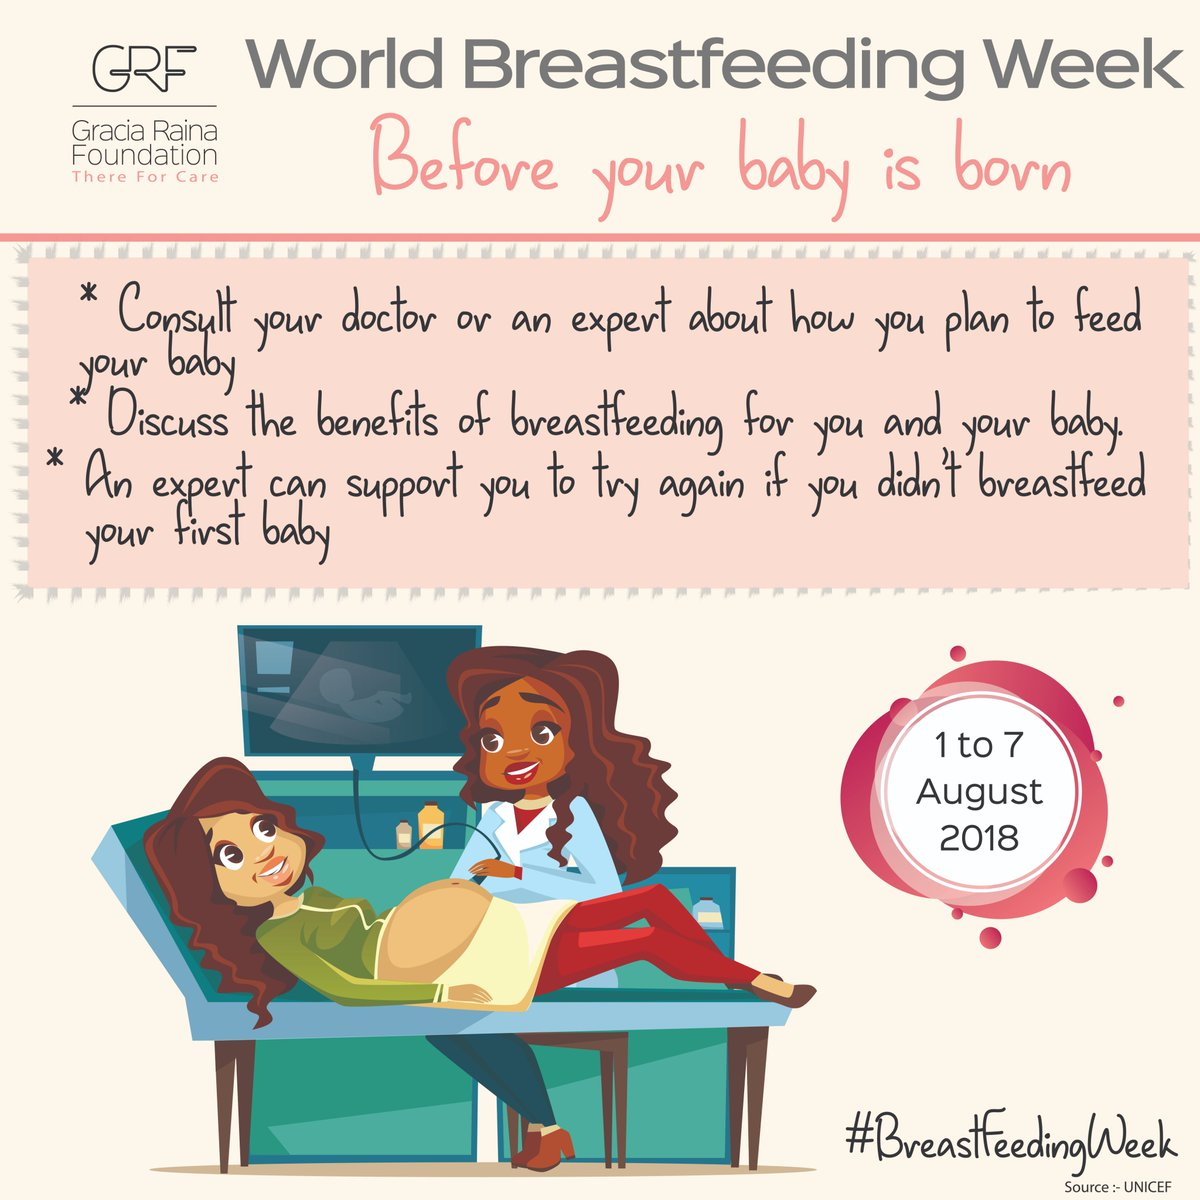 Consult your doctor or a lactation expert about #breastfeeding before your baby arrives. How do I position my baby?What if breastfeeding hurts?Do babies have one breast or both per feed? How do I know if my baby had enough milk? Knowing these answers will help! #BreastFeedingWeek